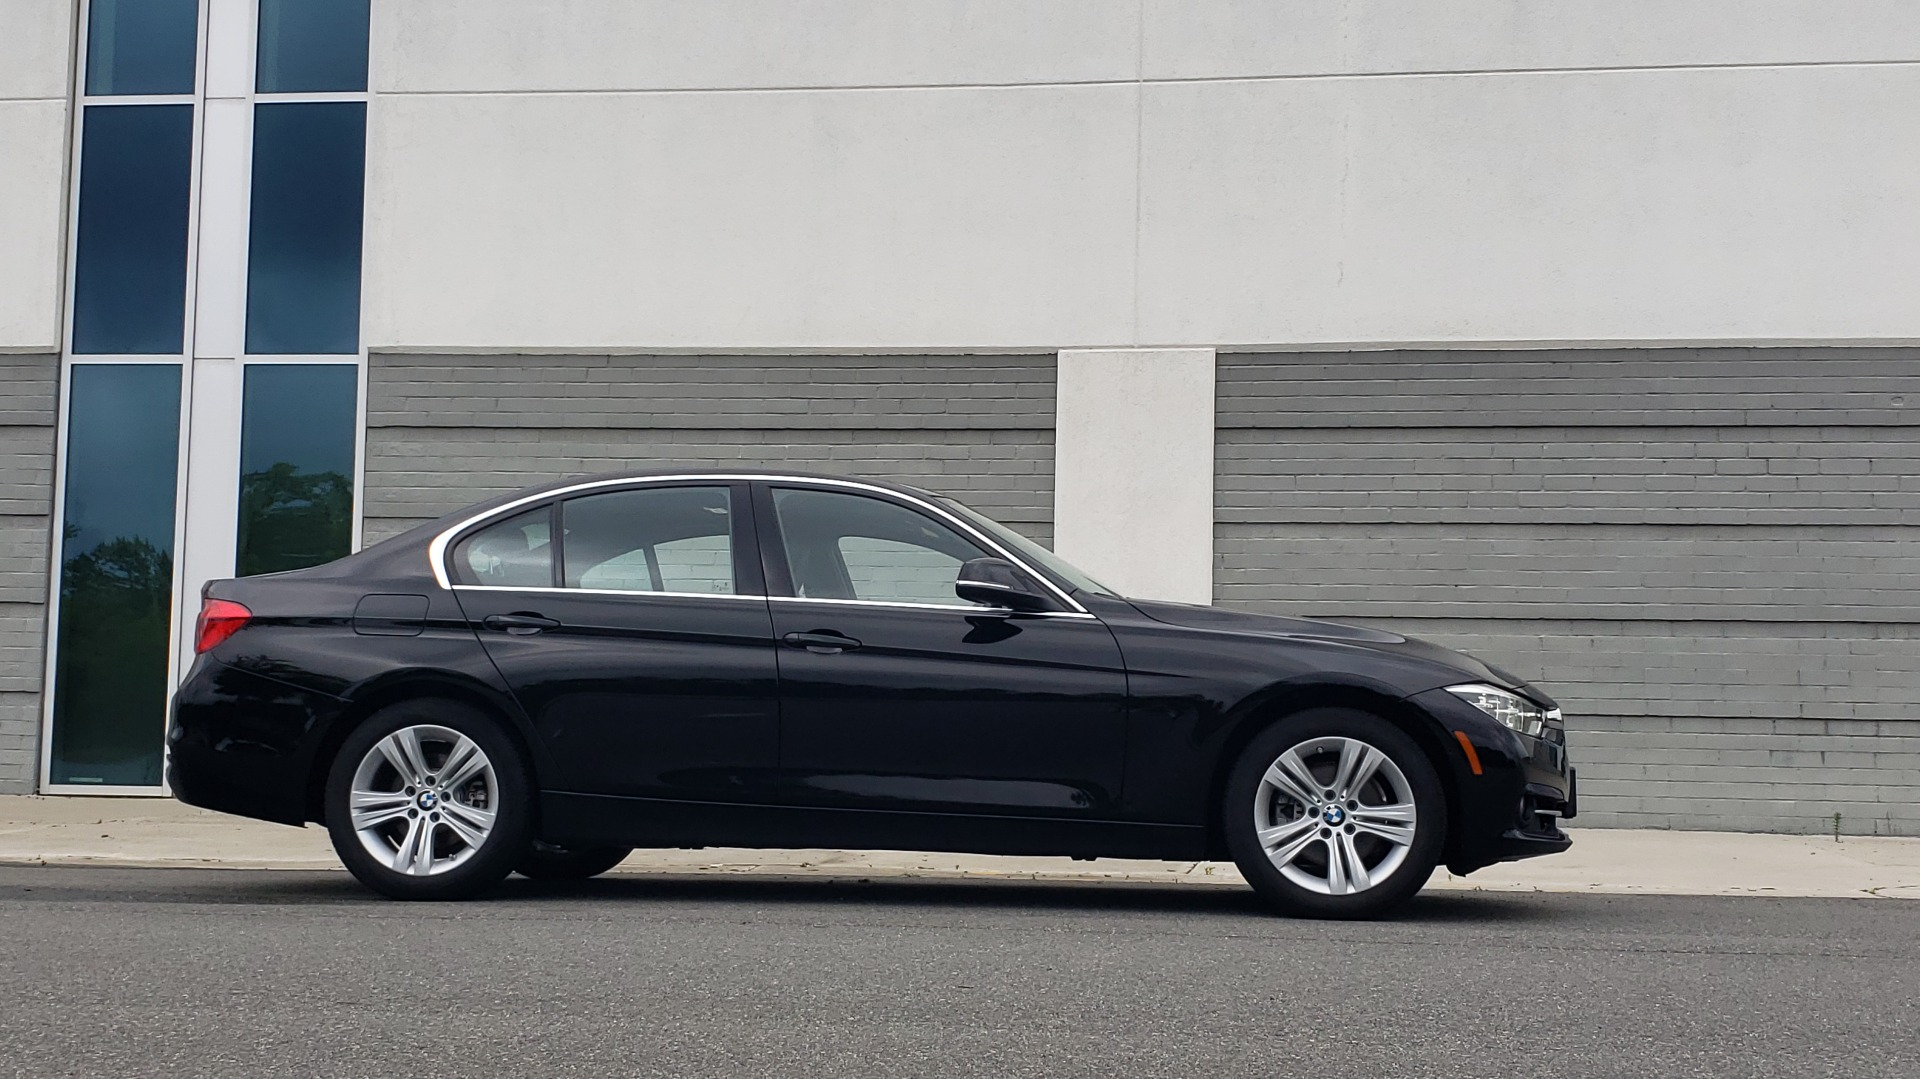 Used 2018 BMW 3 SERIES 330IXDRIVE / CONV PKG / NAV / SUNROOF / HTD STS / REARVIEW for sale $26,552 at Formula Imports in Charlotte NC 28227 9